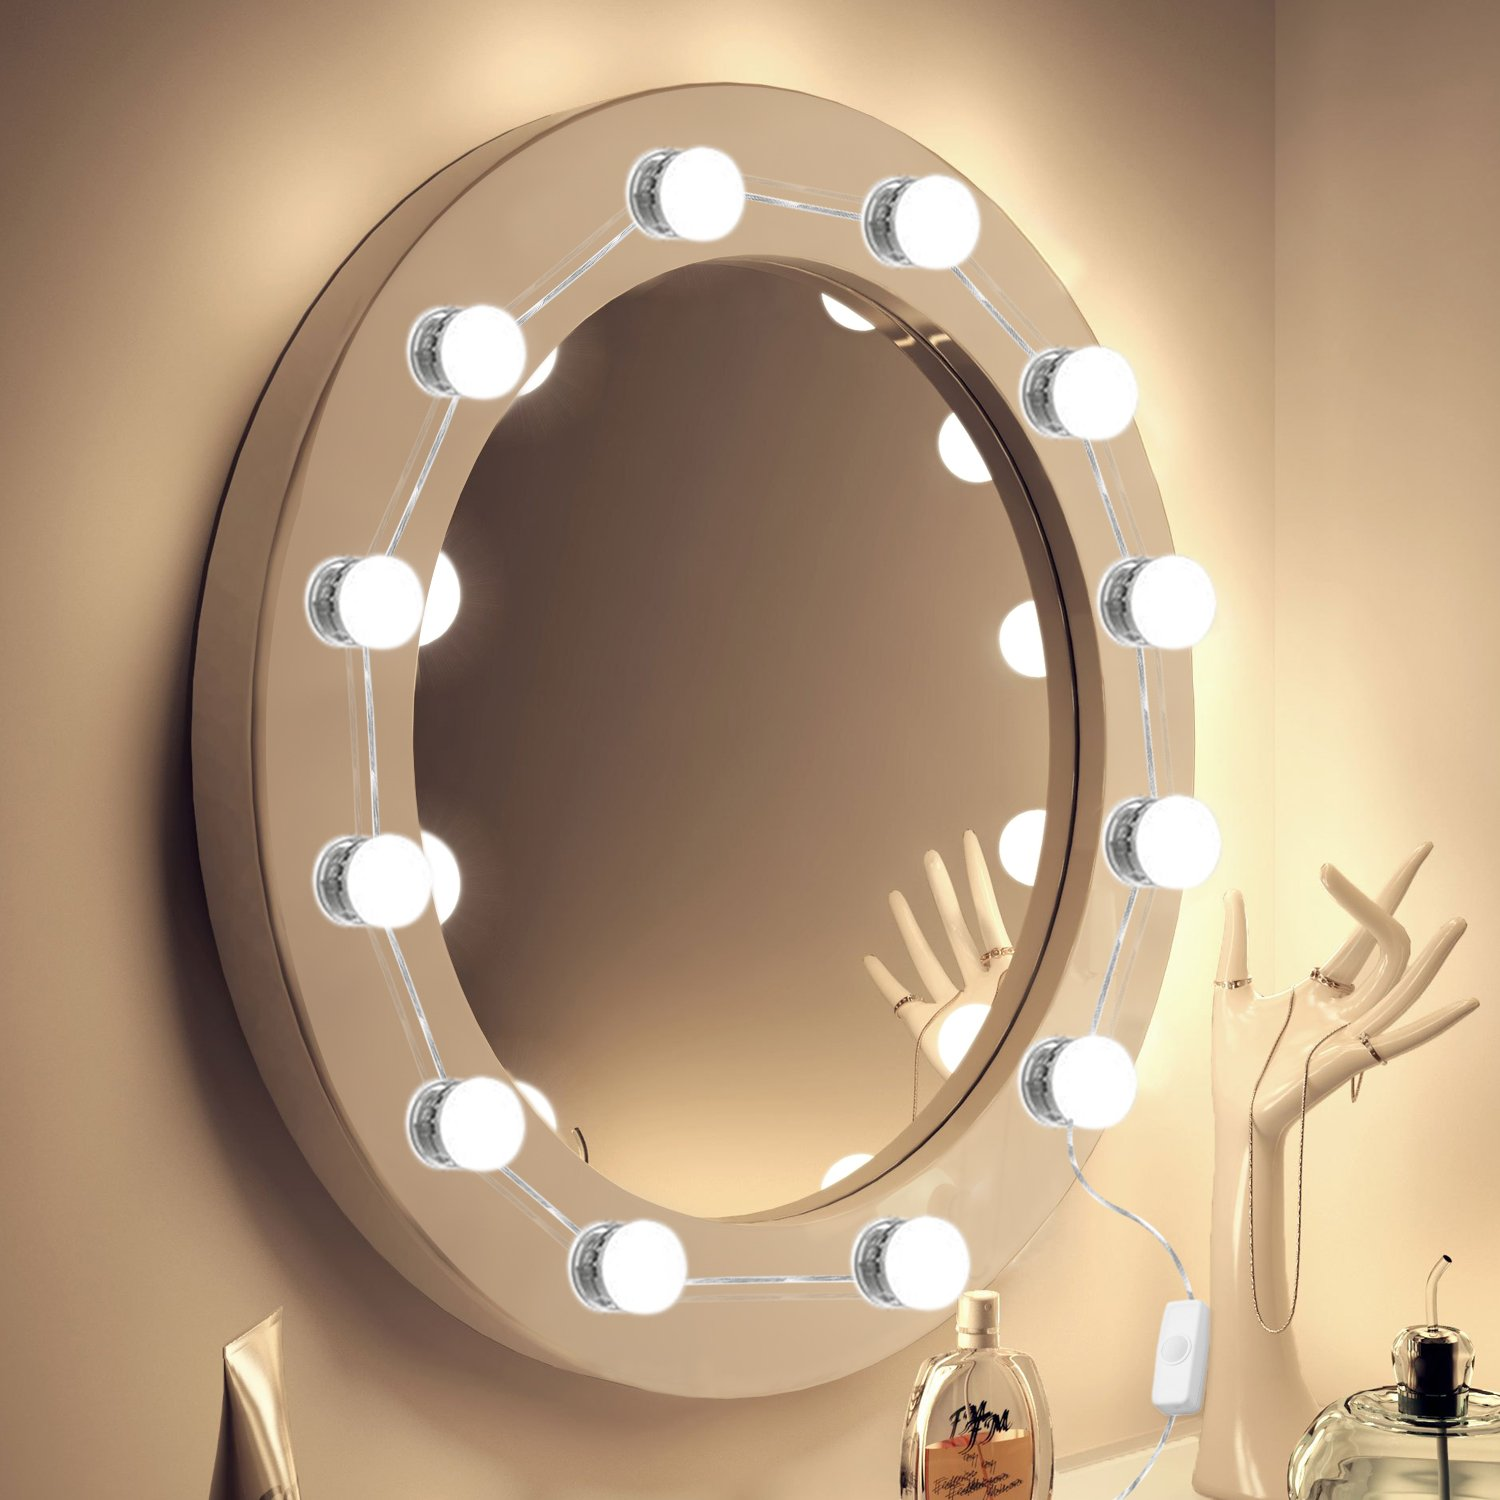 Vanity Mirror Lights 2018 UPGRADED 7000K Hollywood Style LED Makeup Mirror Lights Kit 12 Hidden Adjustable Length Makeup Lamps Lighting Fixture Strip with Dimmable Light Bulbs (Mirror Not Included)